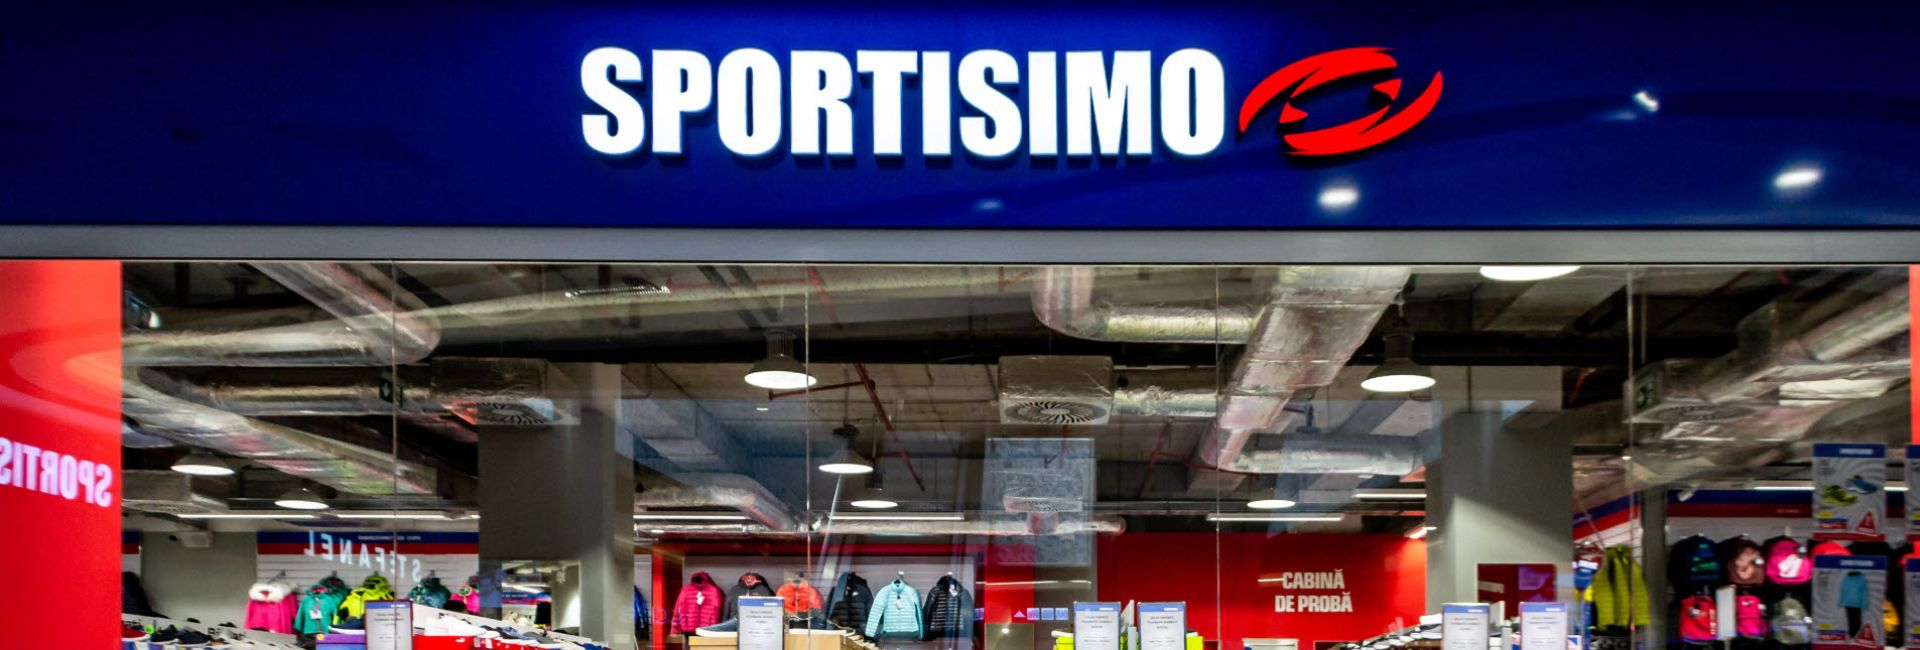 Sportisimo Reference